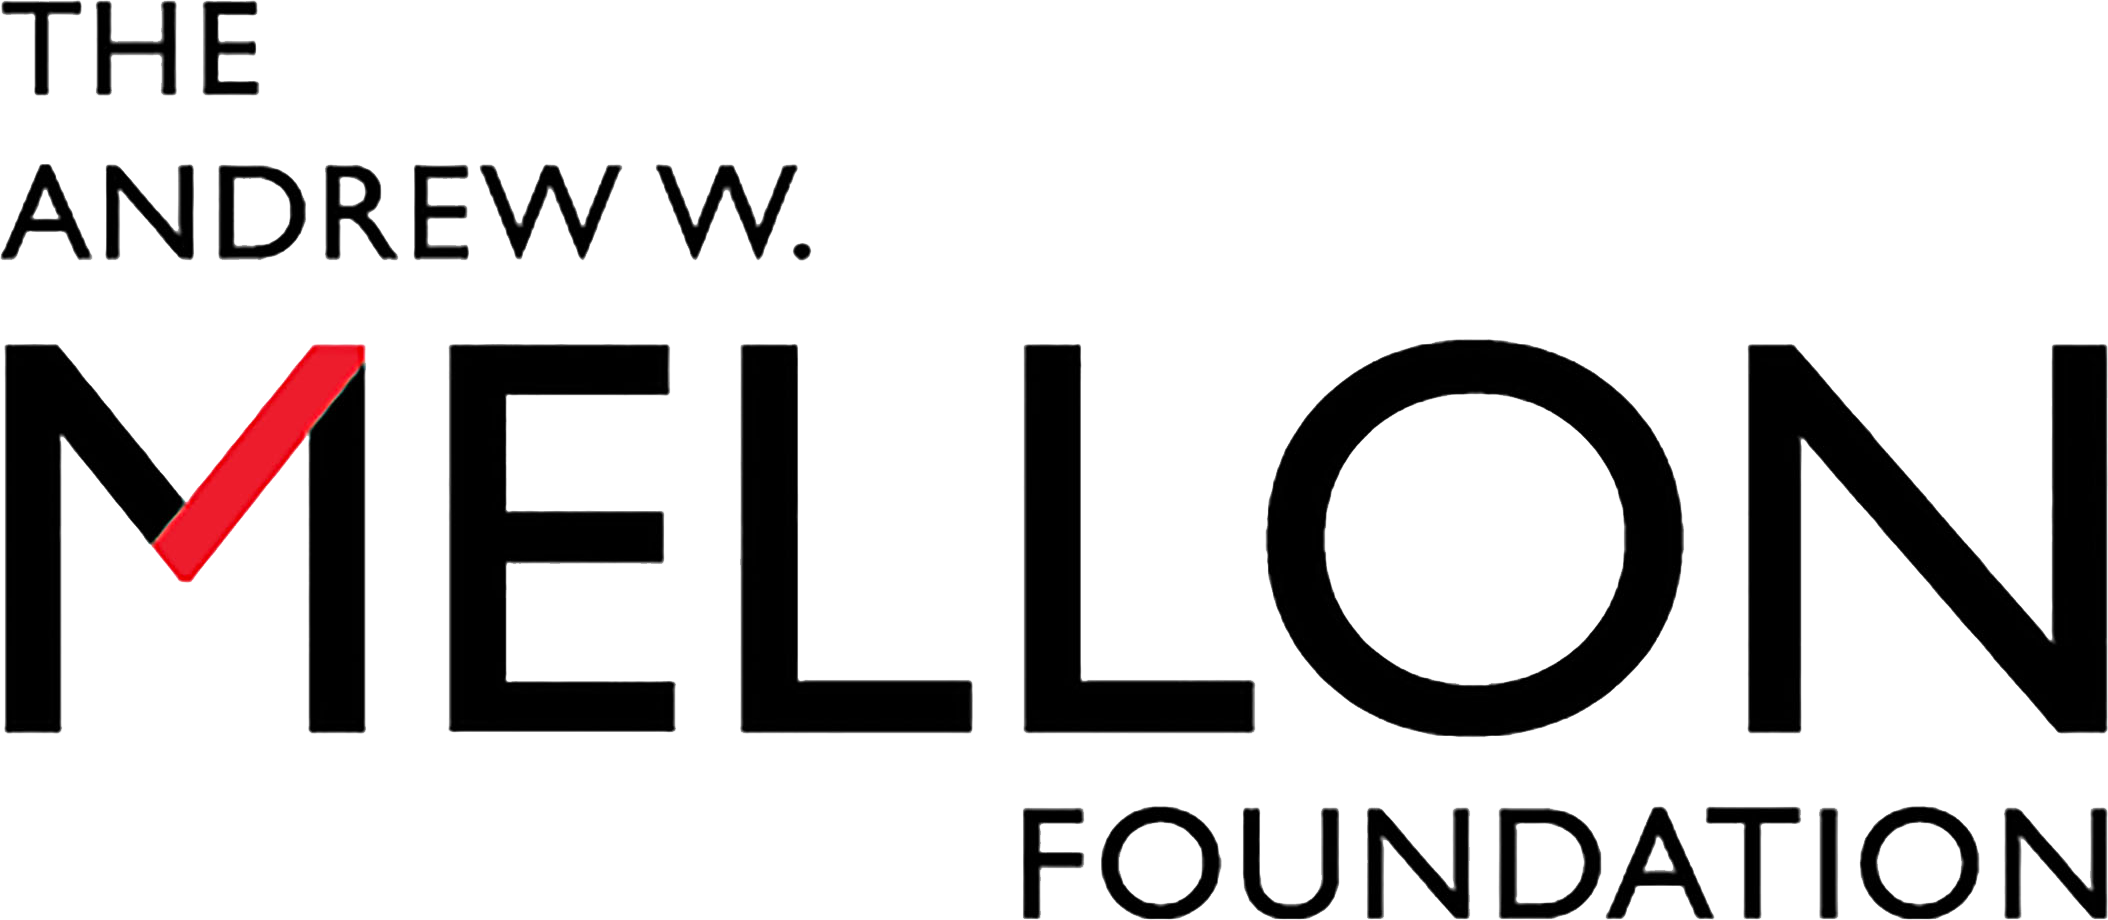 The Andrew W. Mellon Foundation | Color and Grayscale | 2018